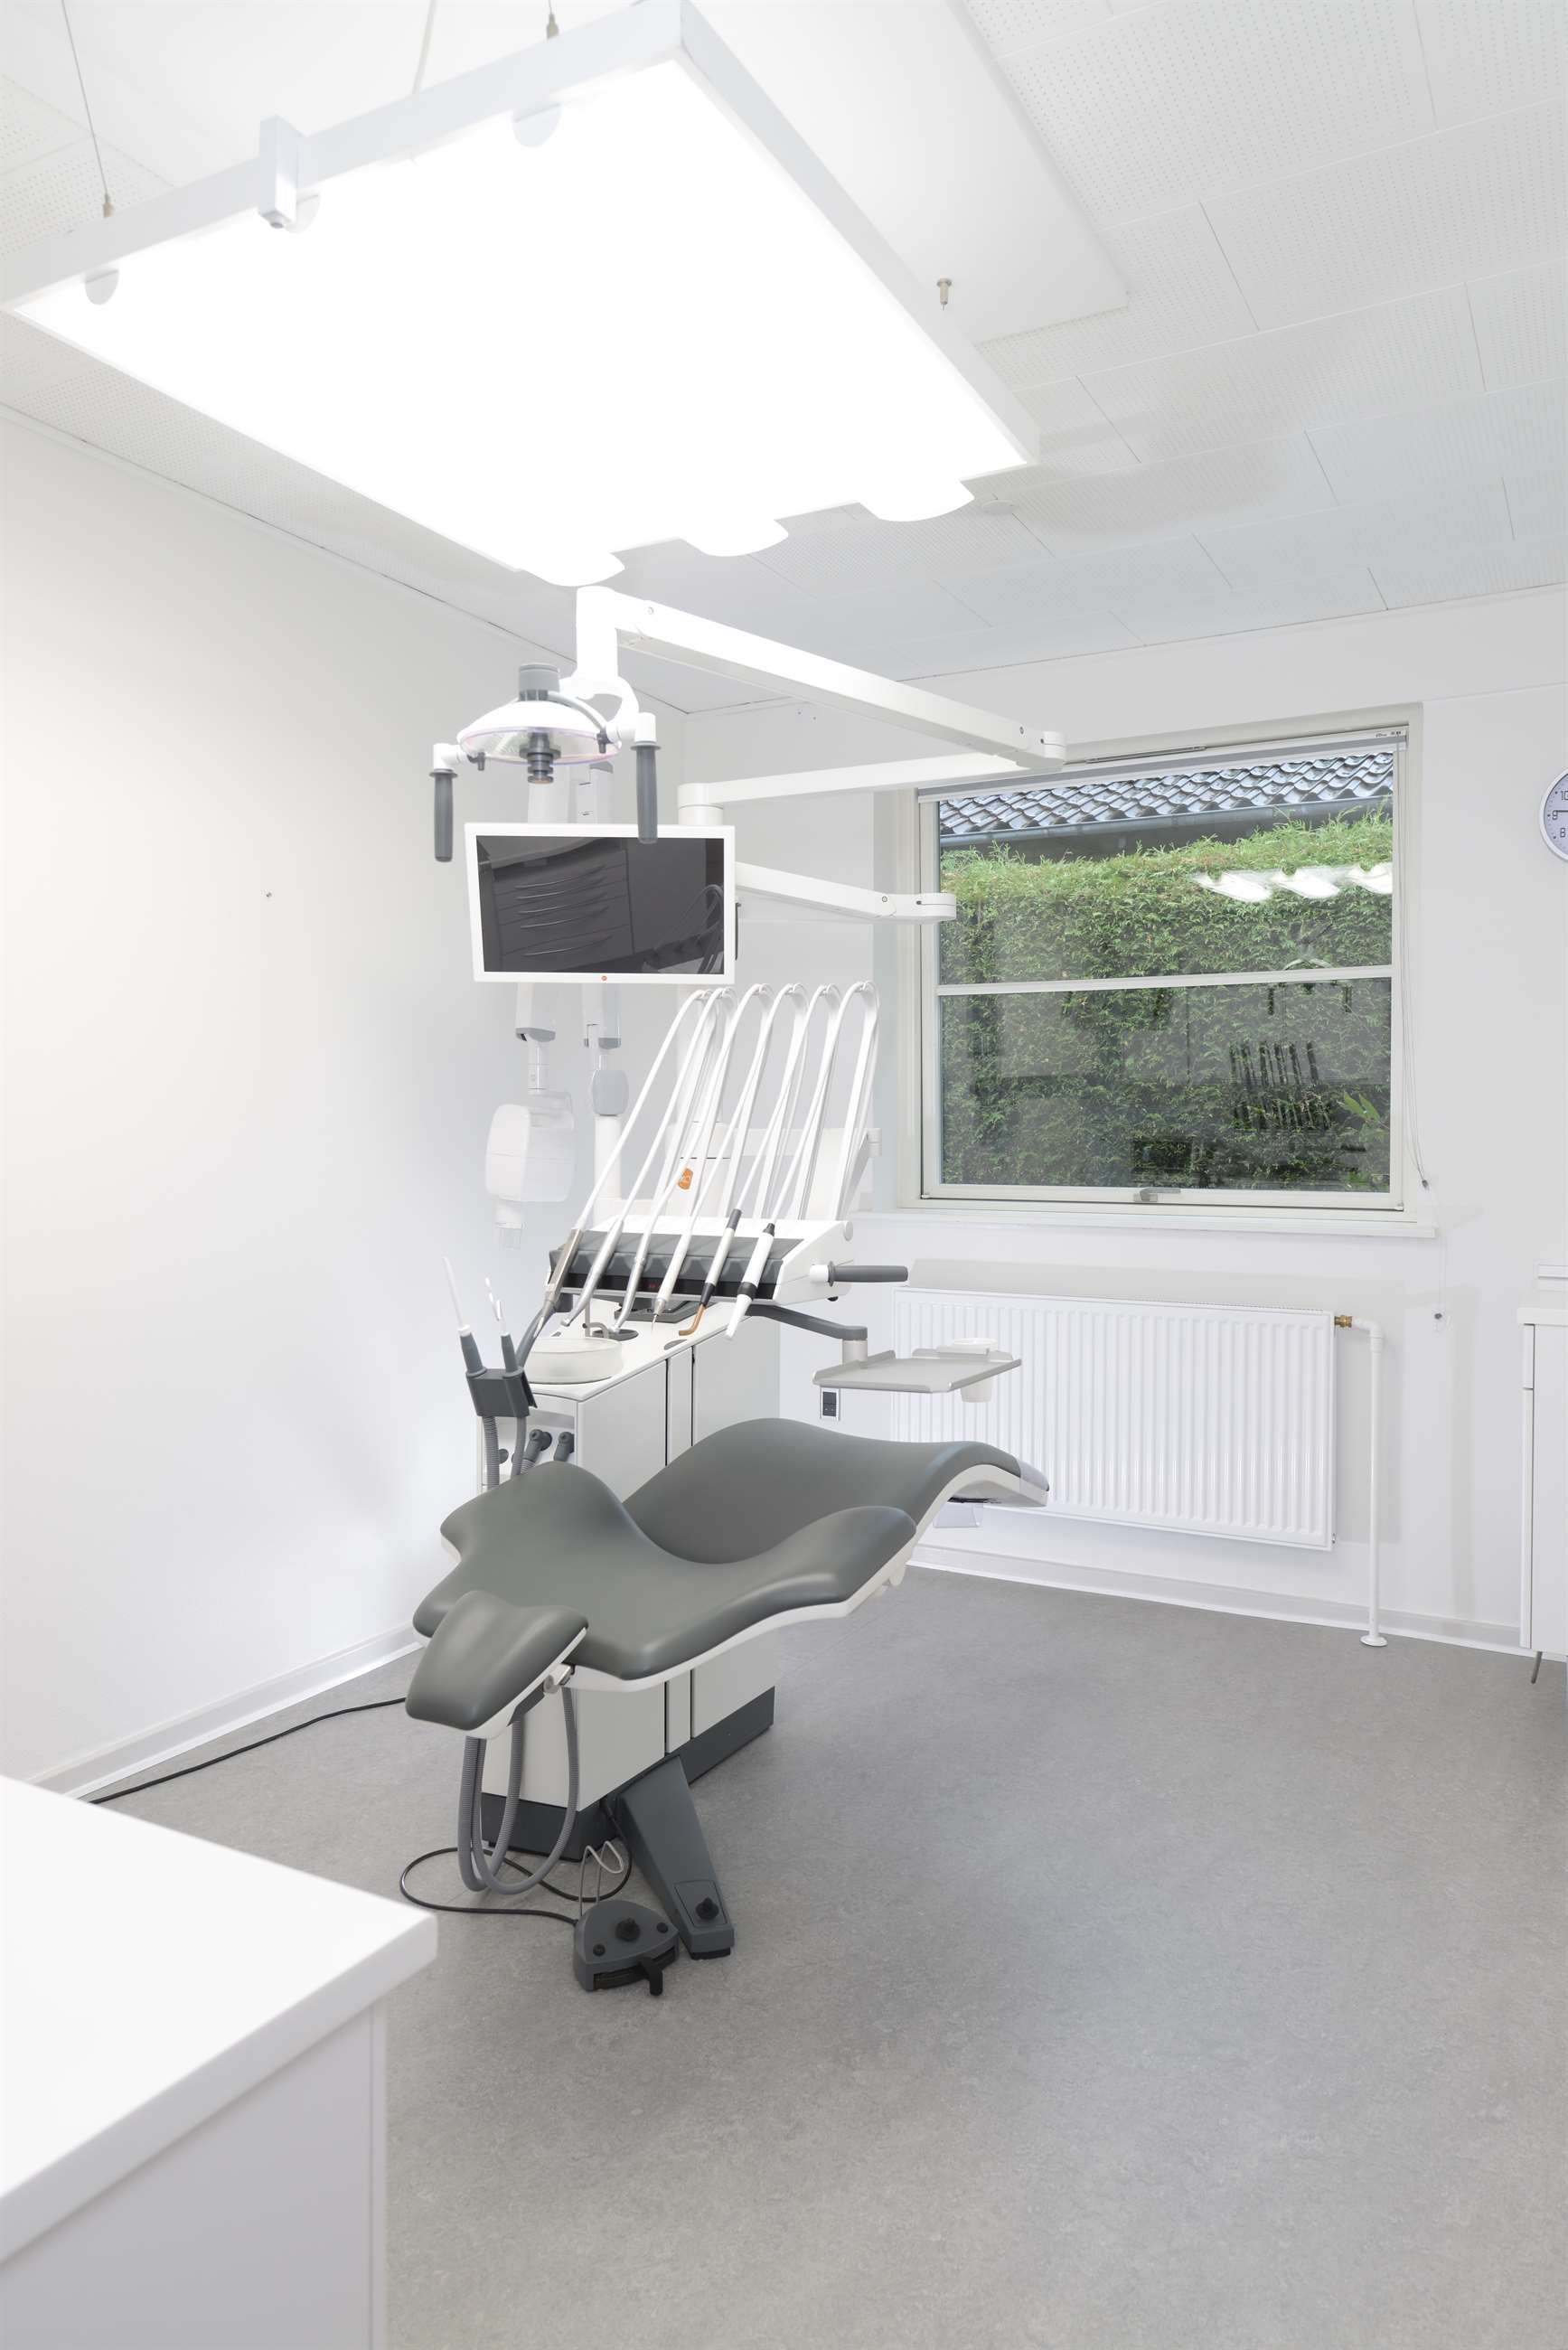 digital dental-års 16-9-2015 5013